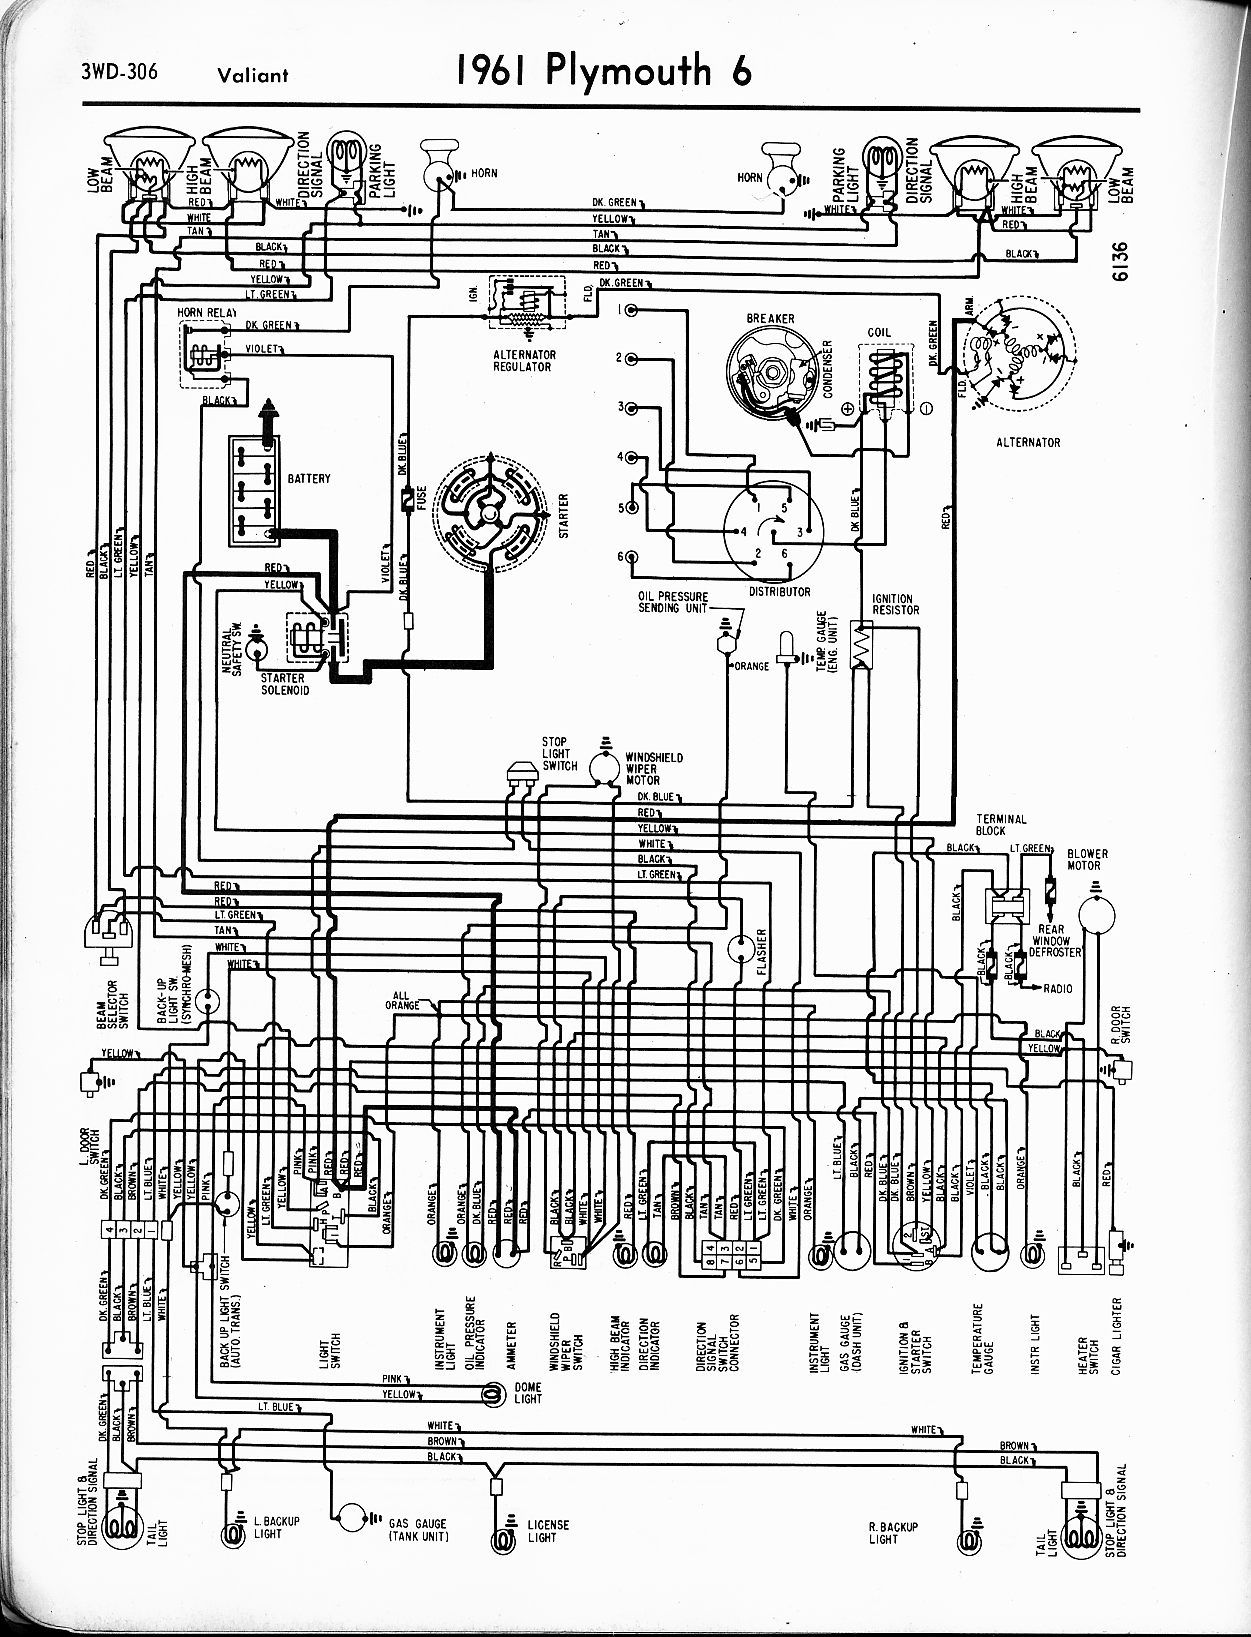 67 dodge dart wiring diagram schematic best wiring library rh 92 borrel drankjes be